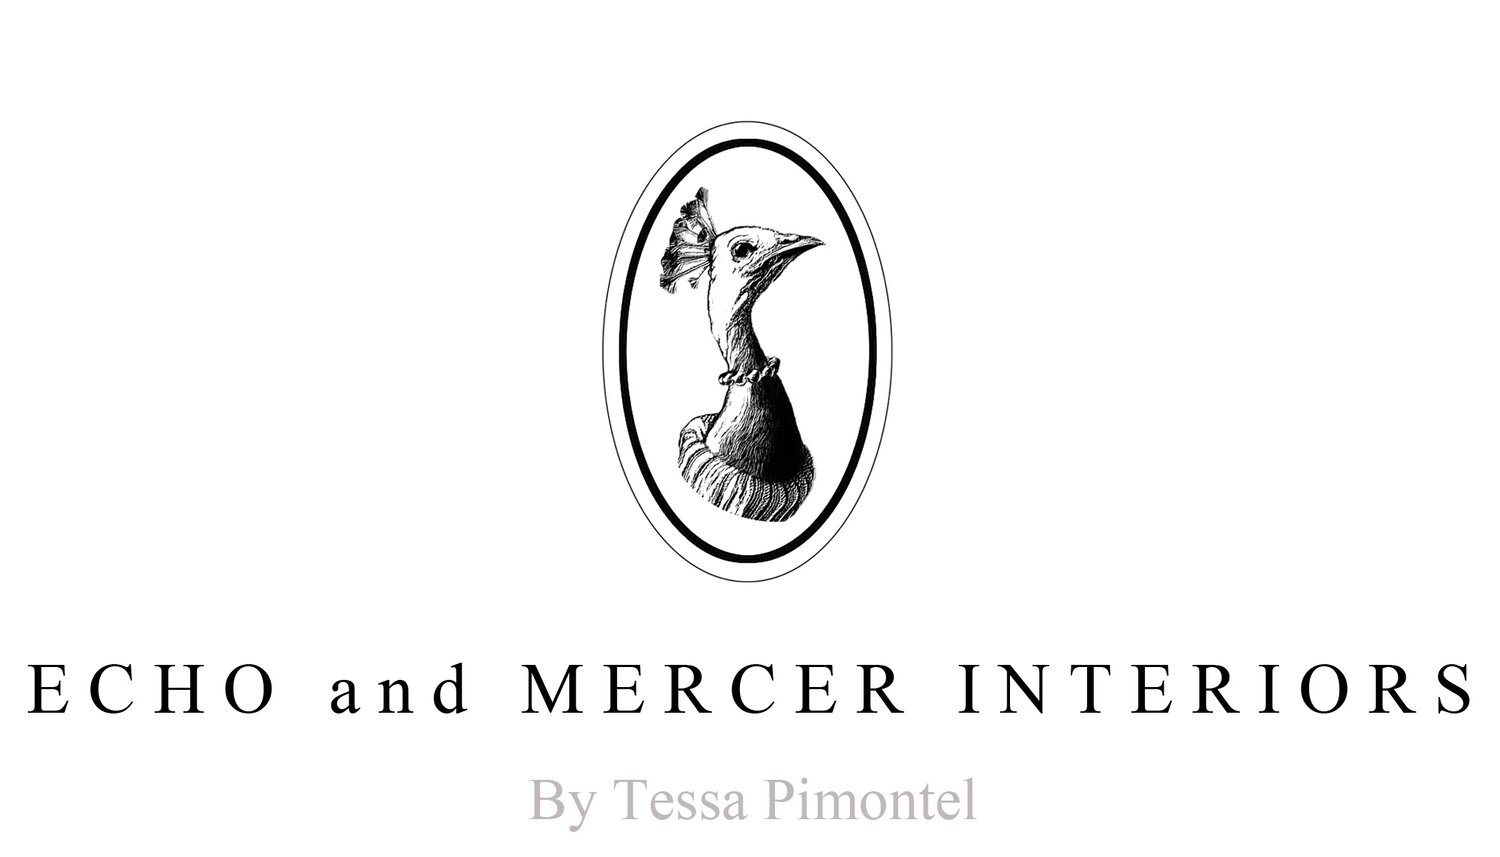 Echo and Mercer Interiors